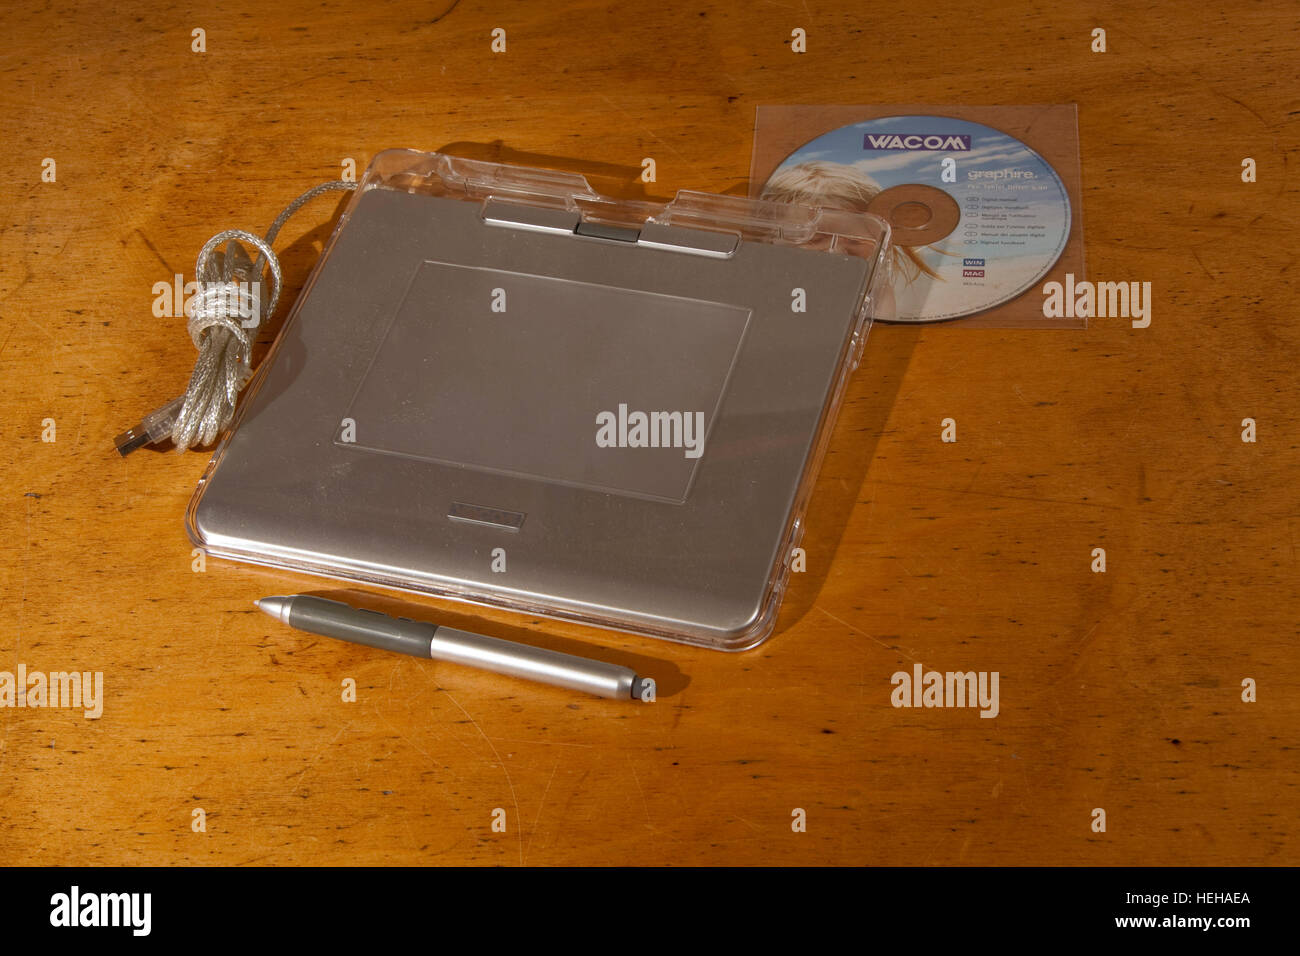 A silver graphics pen tablet on a wooden surface Stock Photo